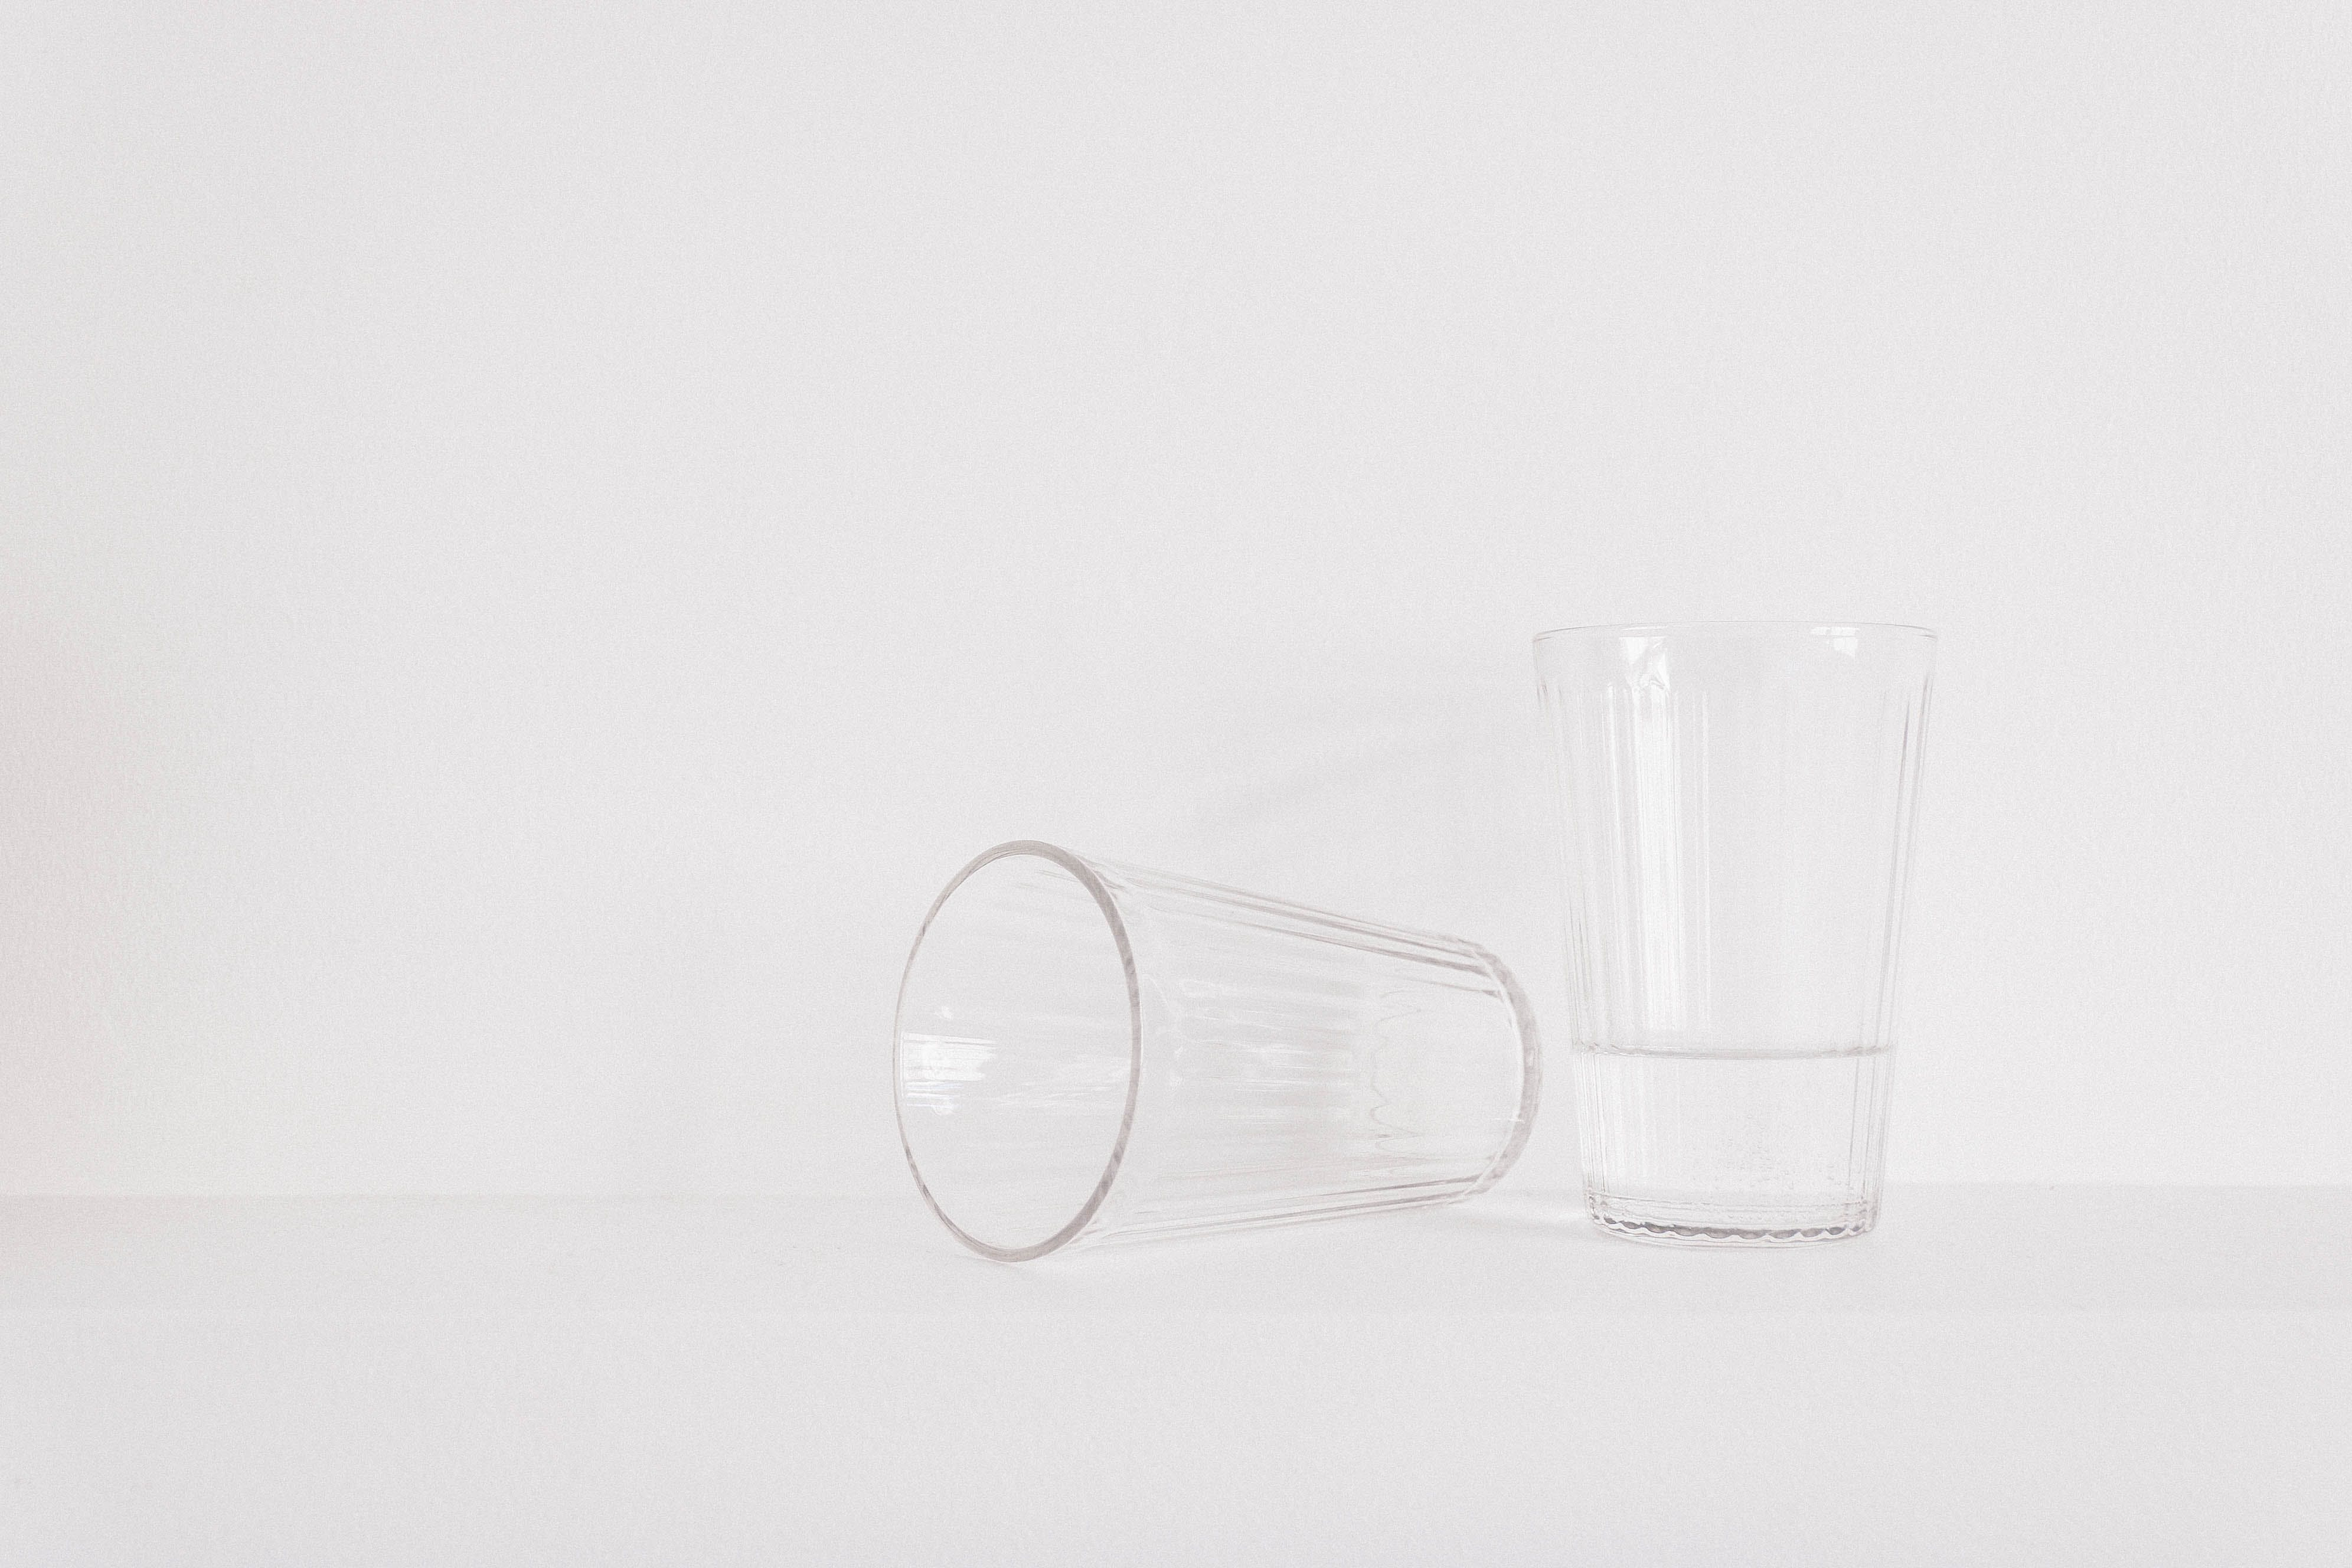 Two Clear Drinking Glasses on Table